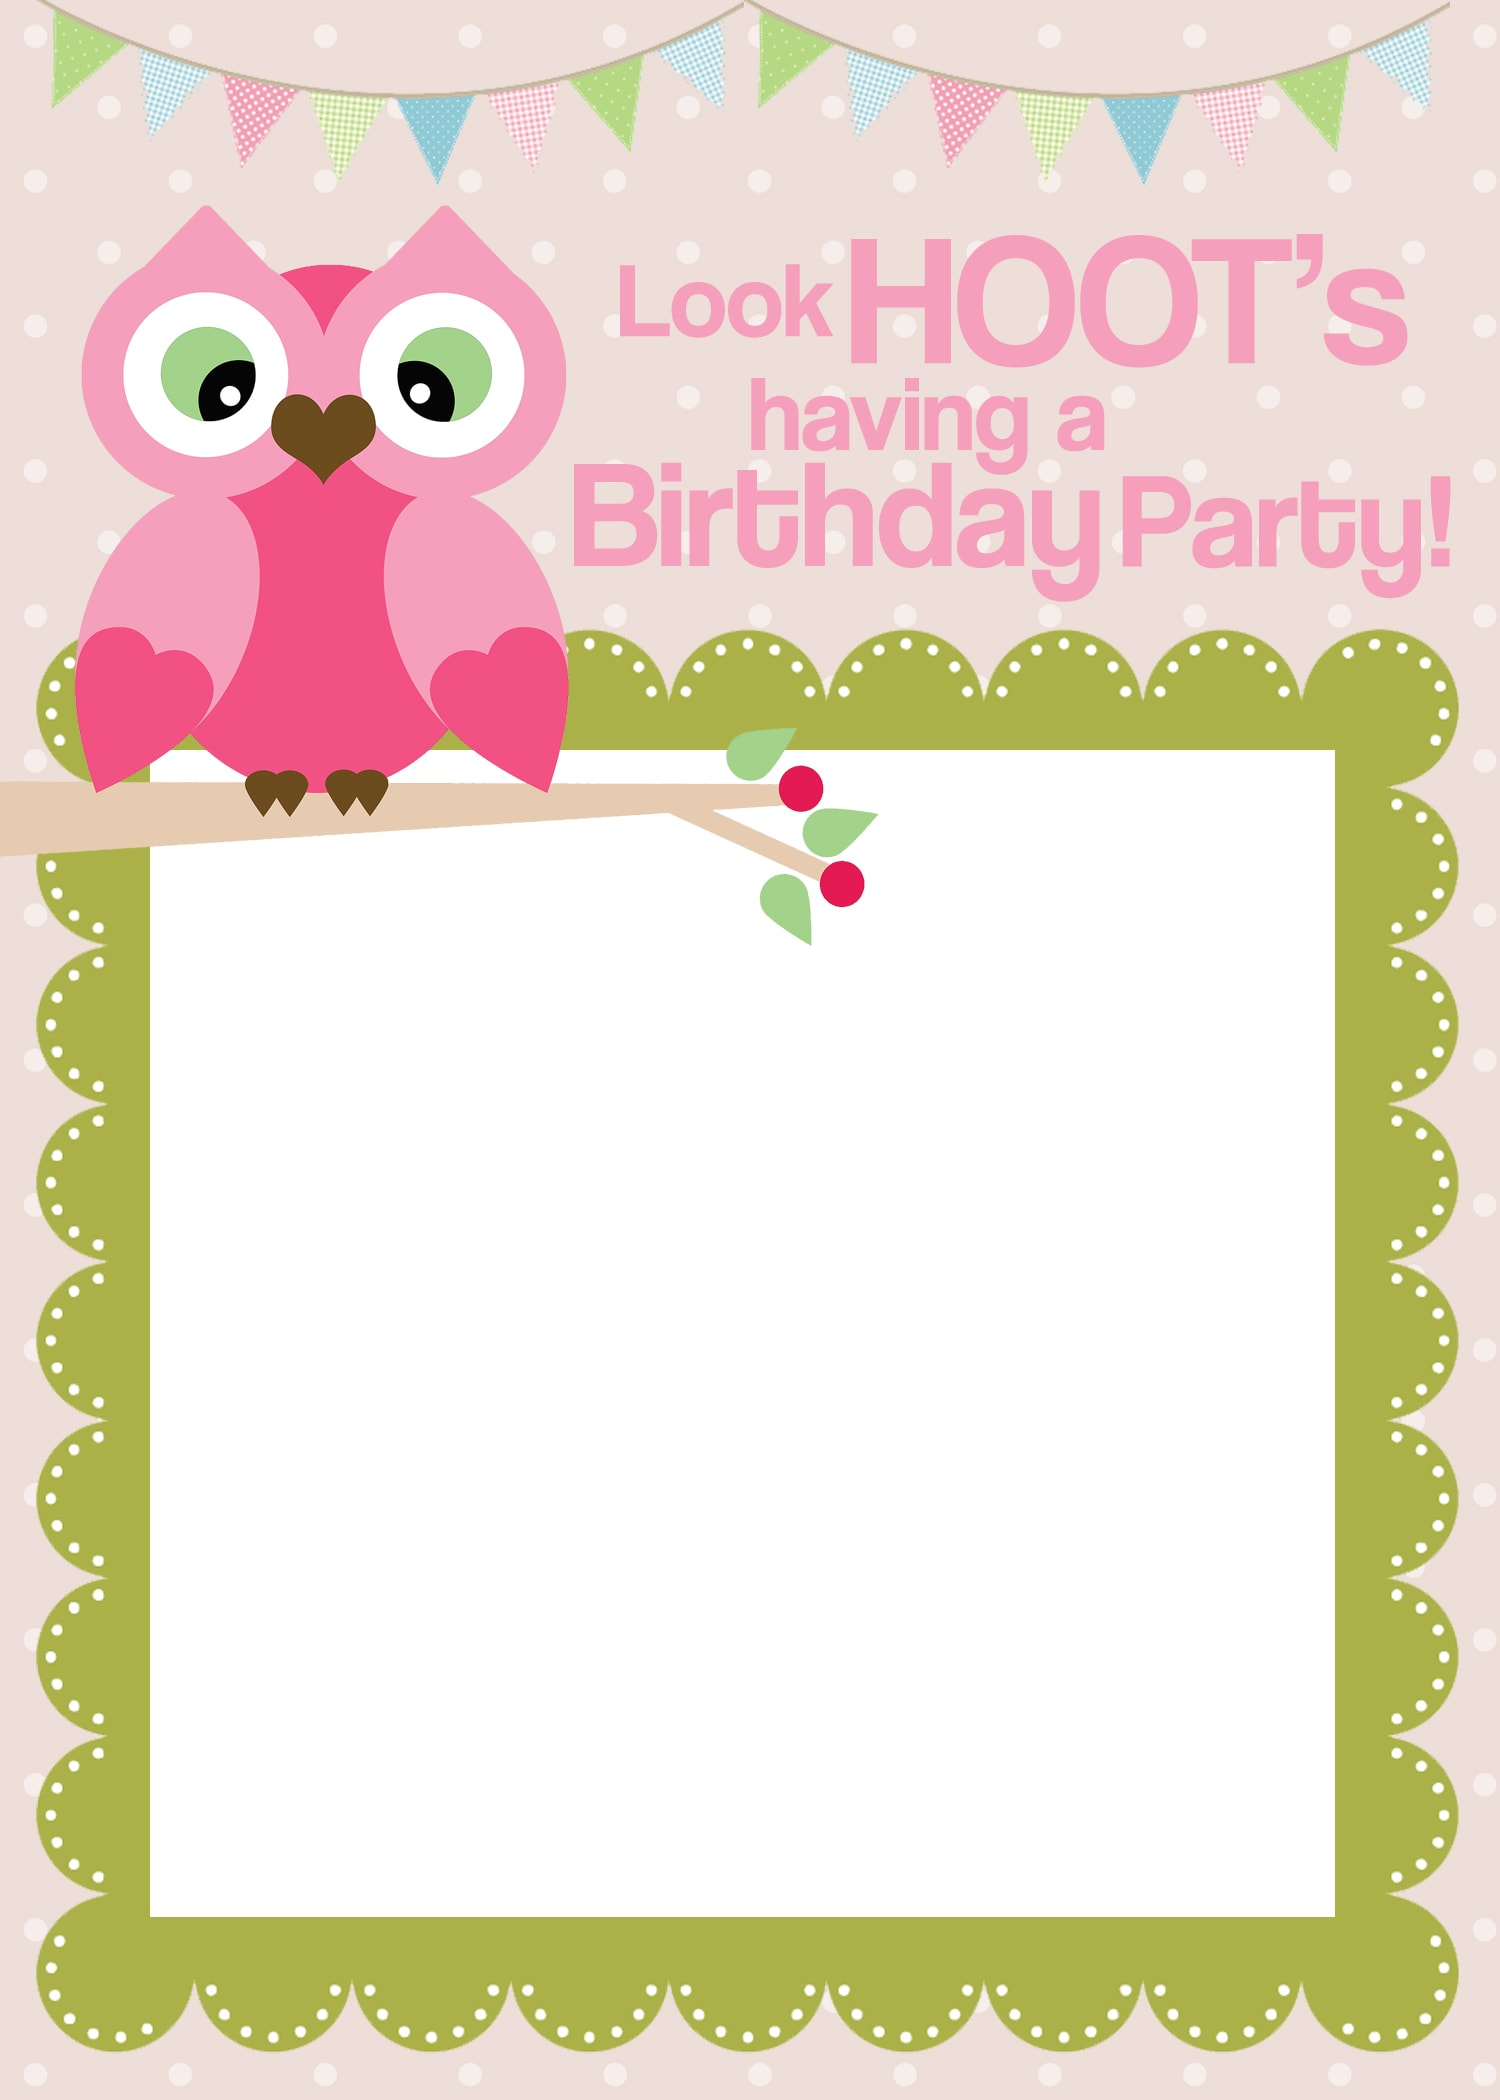 Click Image To Print  Free Birthday Party Invitation Template